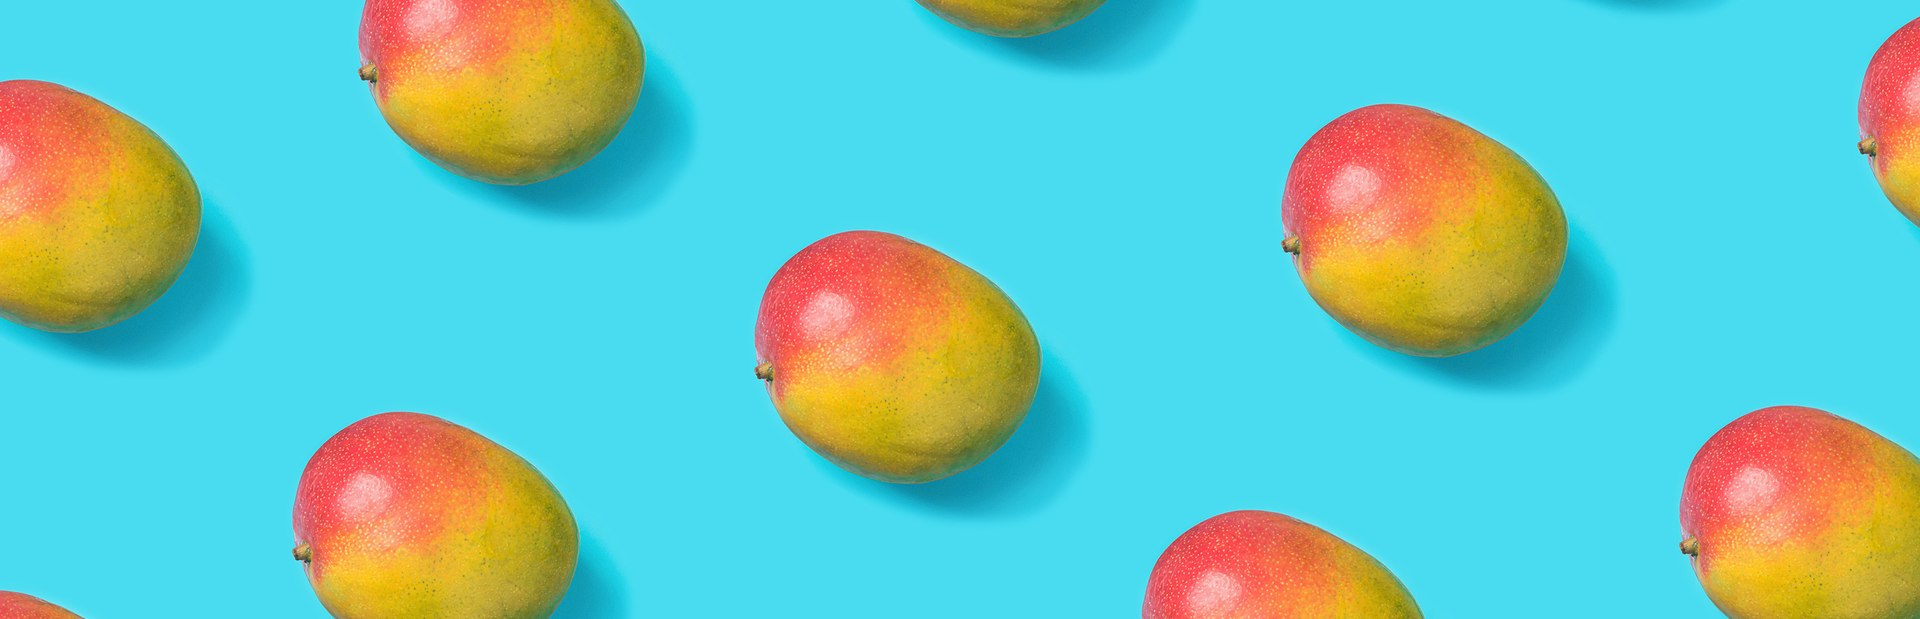 Secrets of the Caribbean: Nevis, the Island of 44 Mangoes